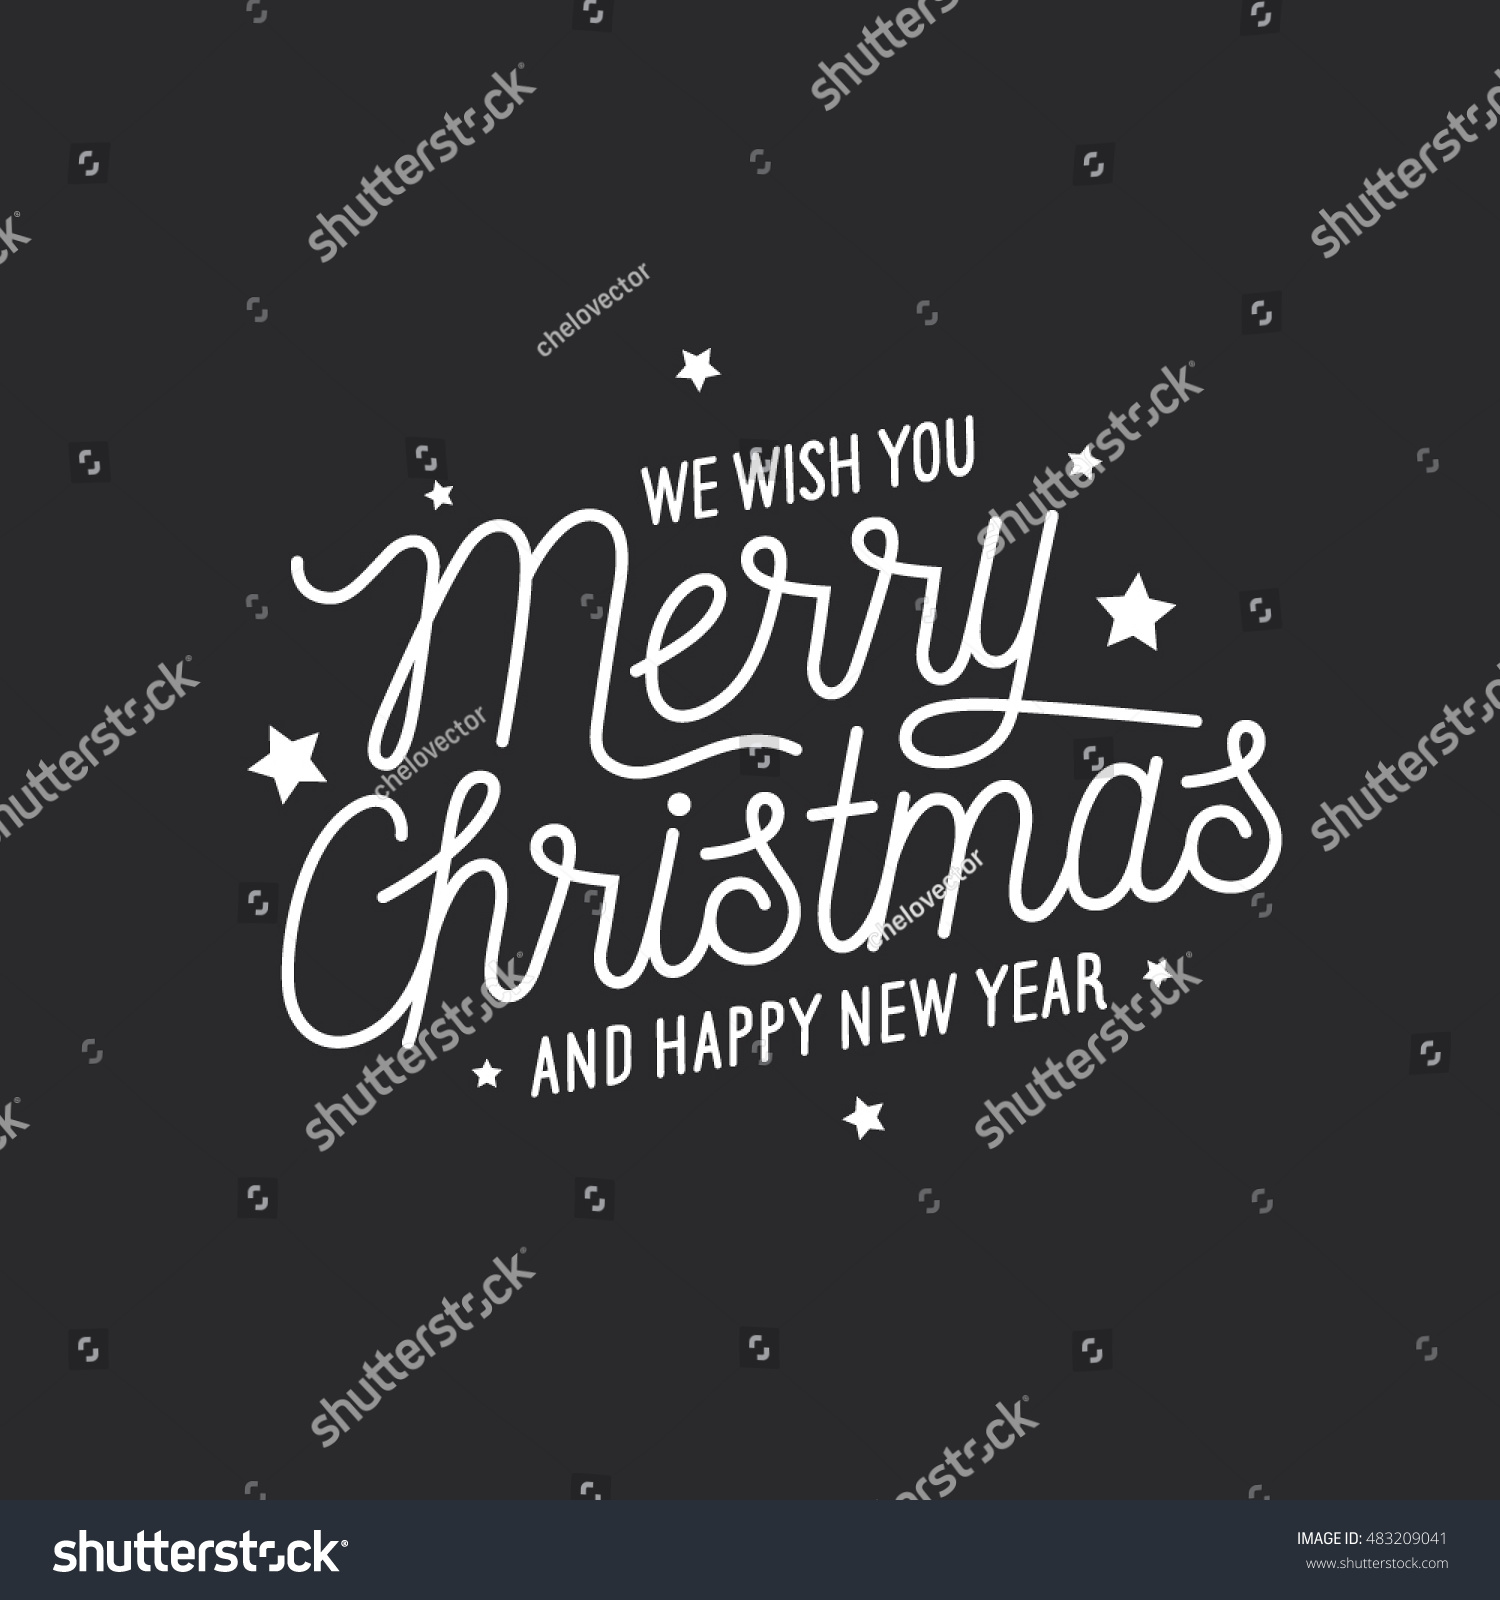 Merry Christmas Happy New Year Lettering Stock Vector 483209041 - Shutterstock